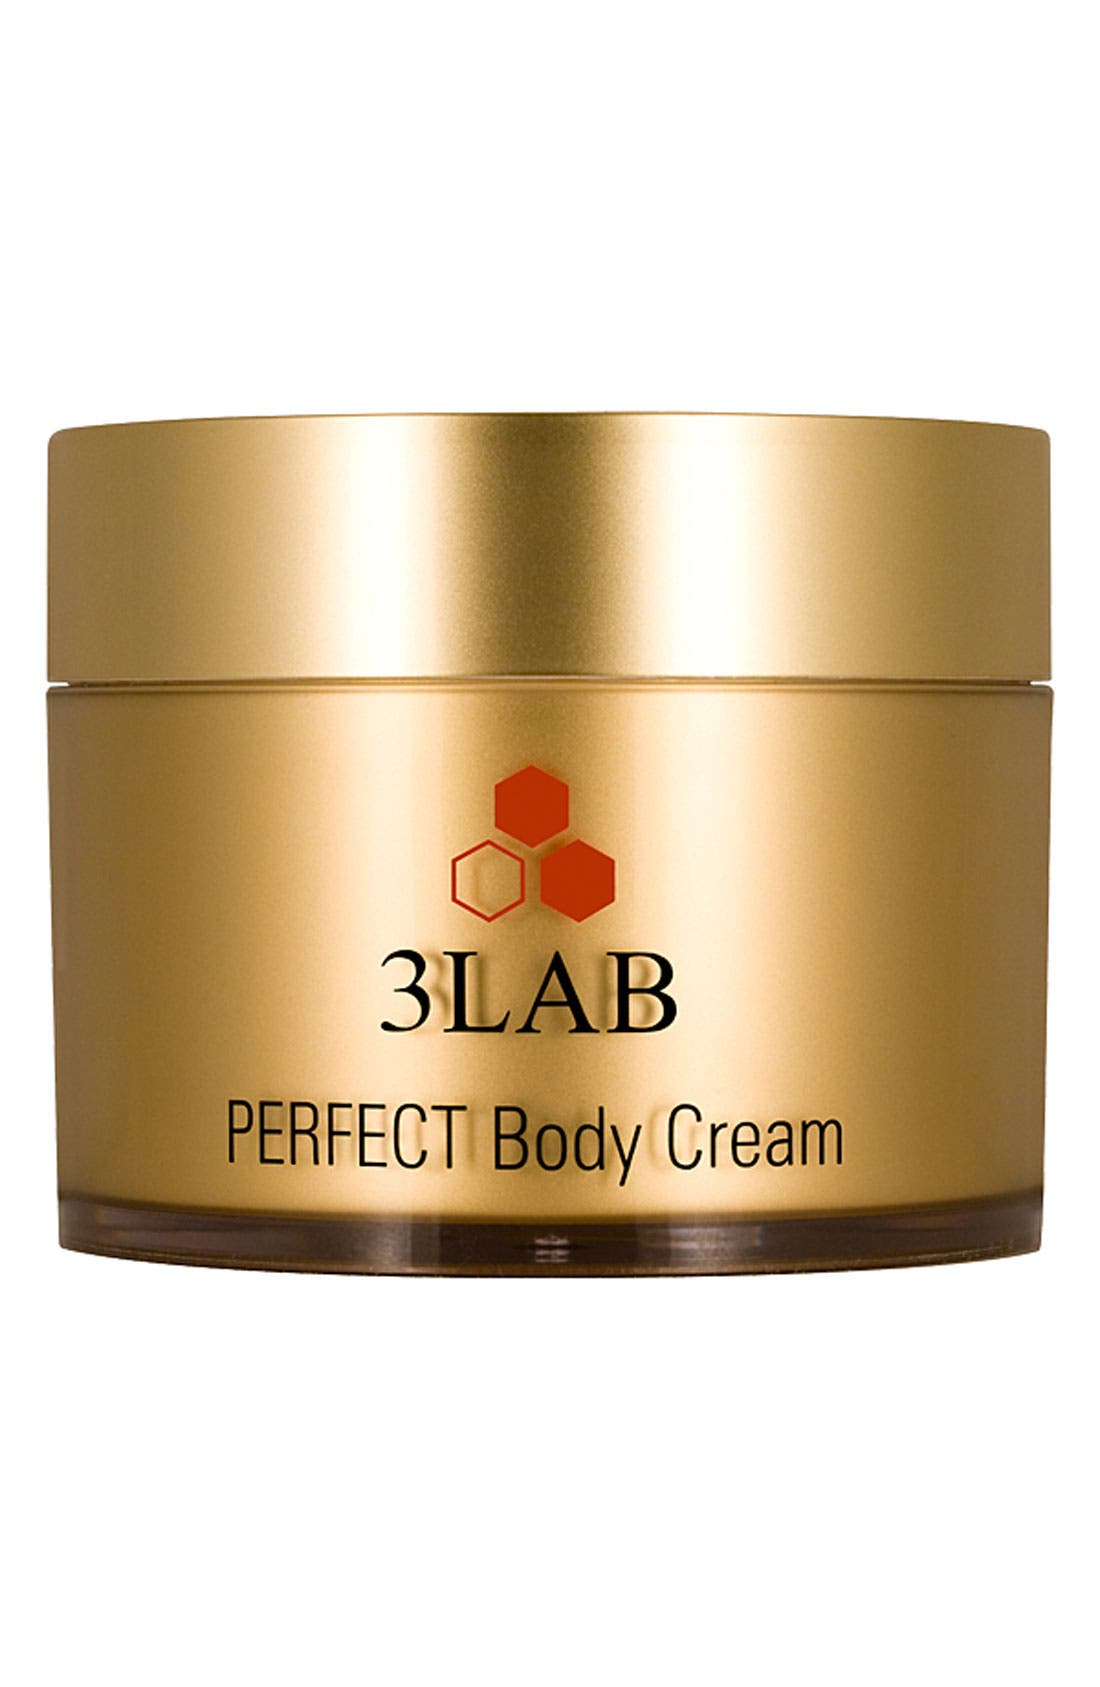 3LAB Perfect Body Cream